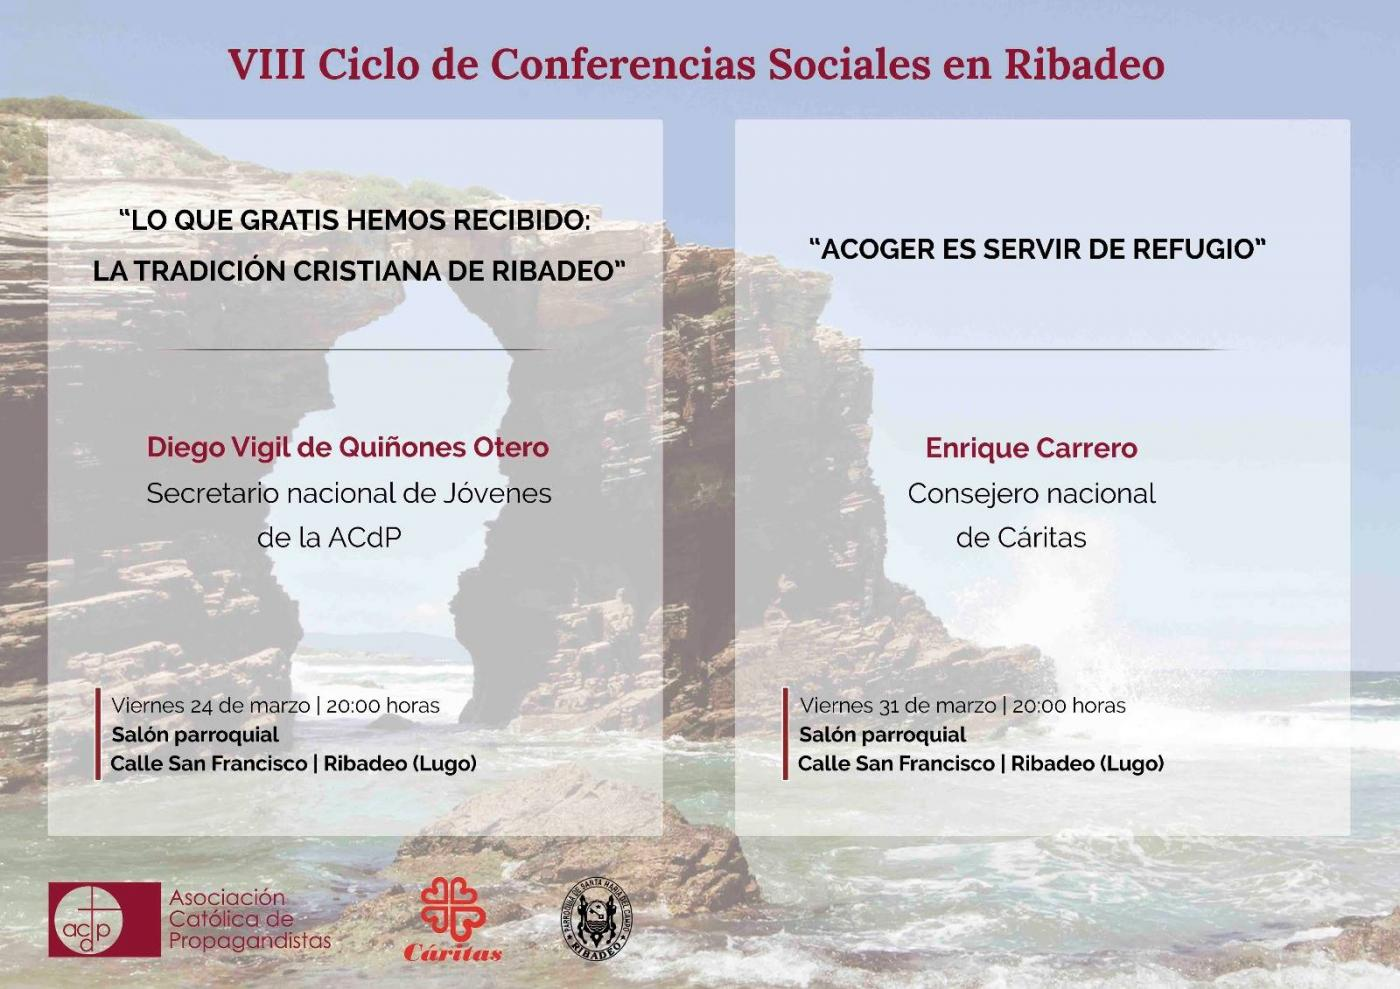 Ciclo de Conferencias Sociales 2017. Cartel